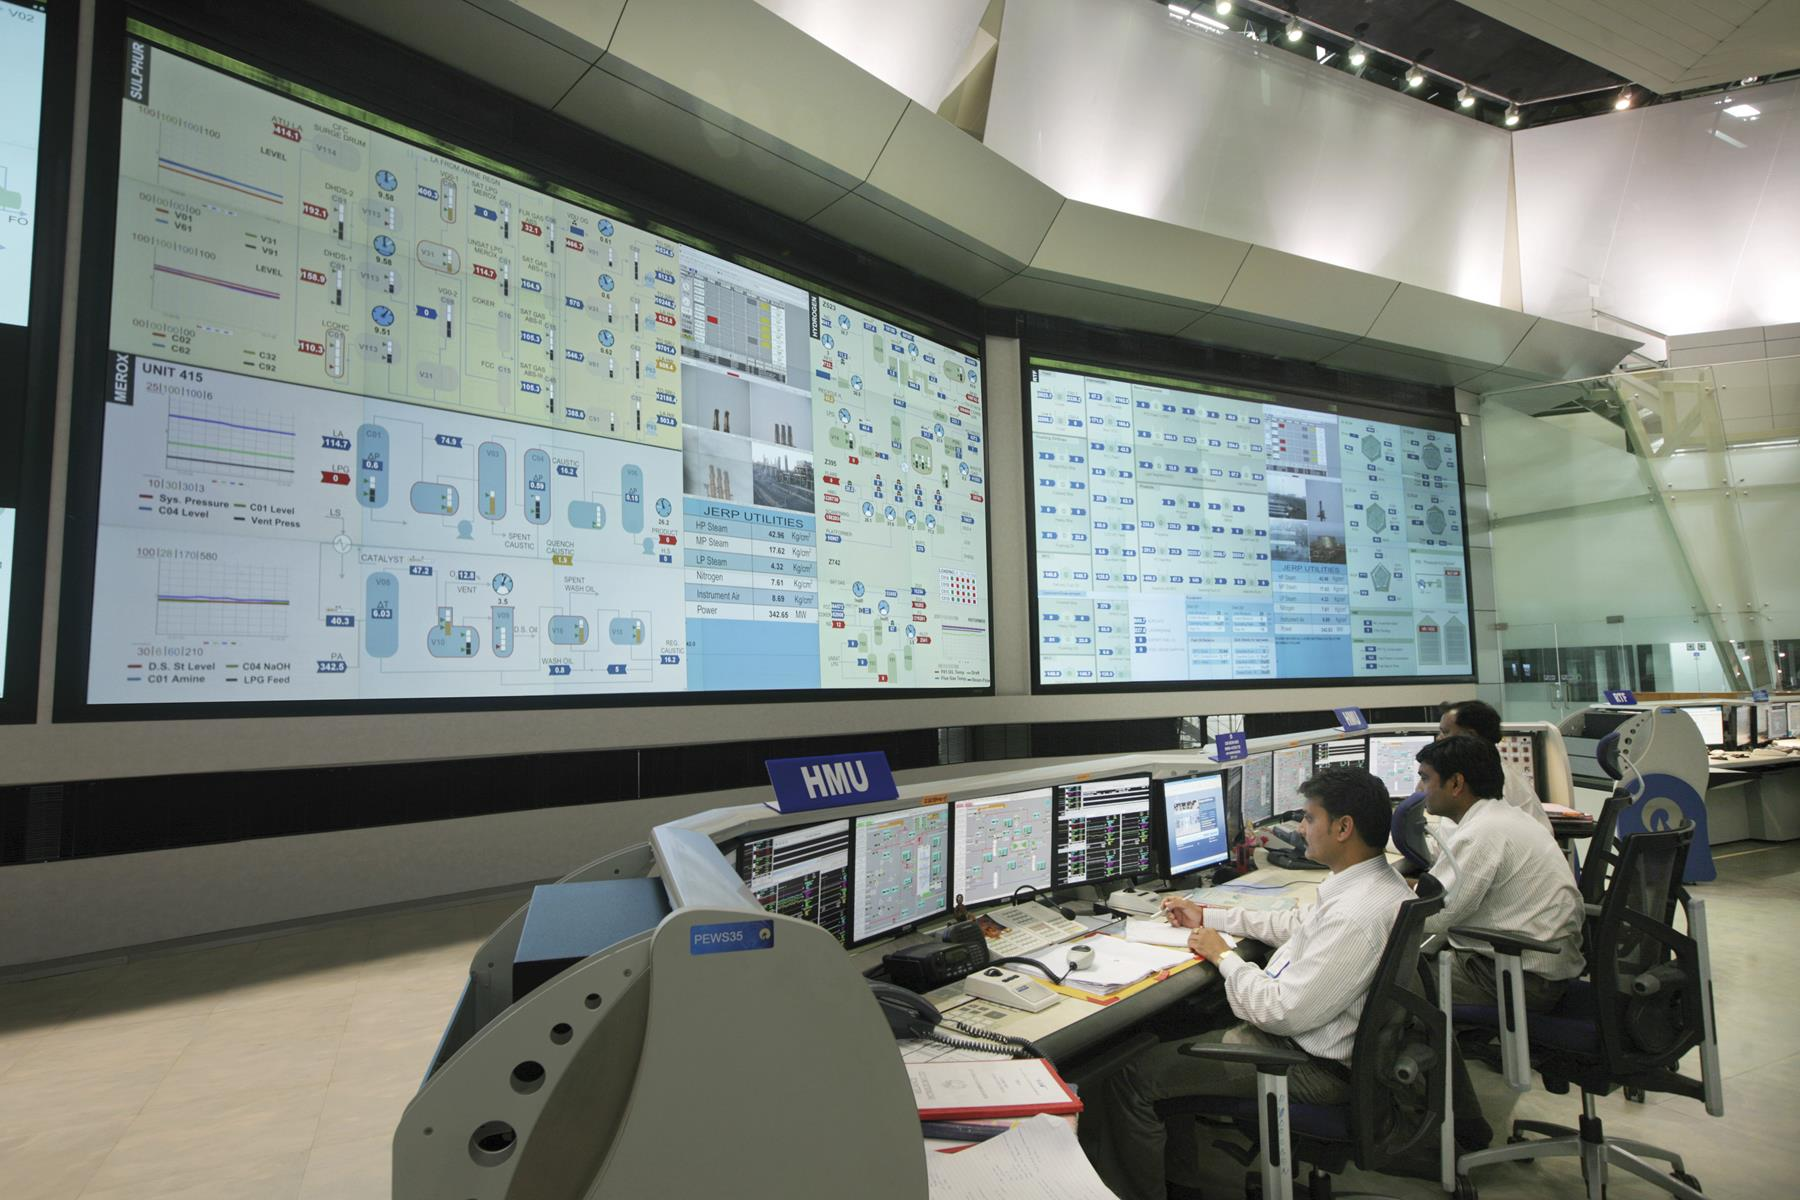 management control systems at reliance industries Reliance industries has around 40,000 employees working in different business company has deployed a knowledge capturing and management portal reliance kms travel management system, project management system, elearning.